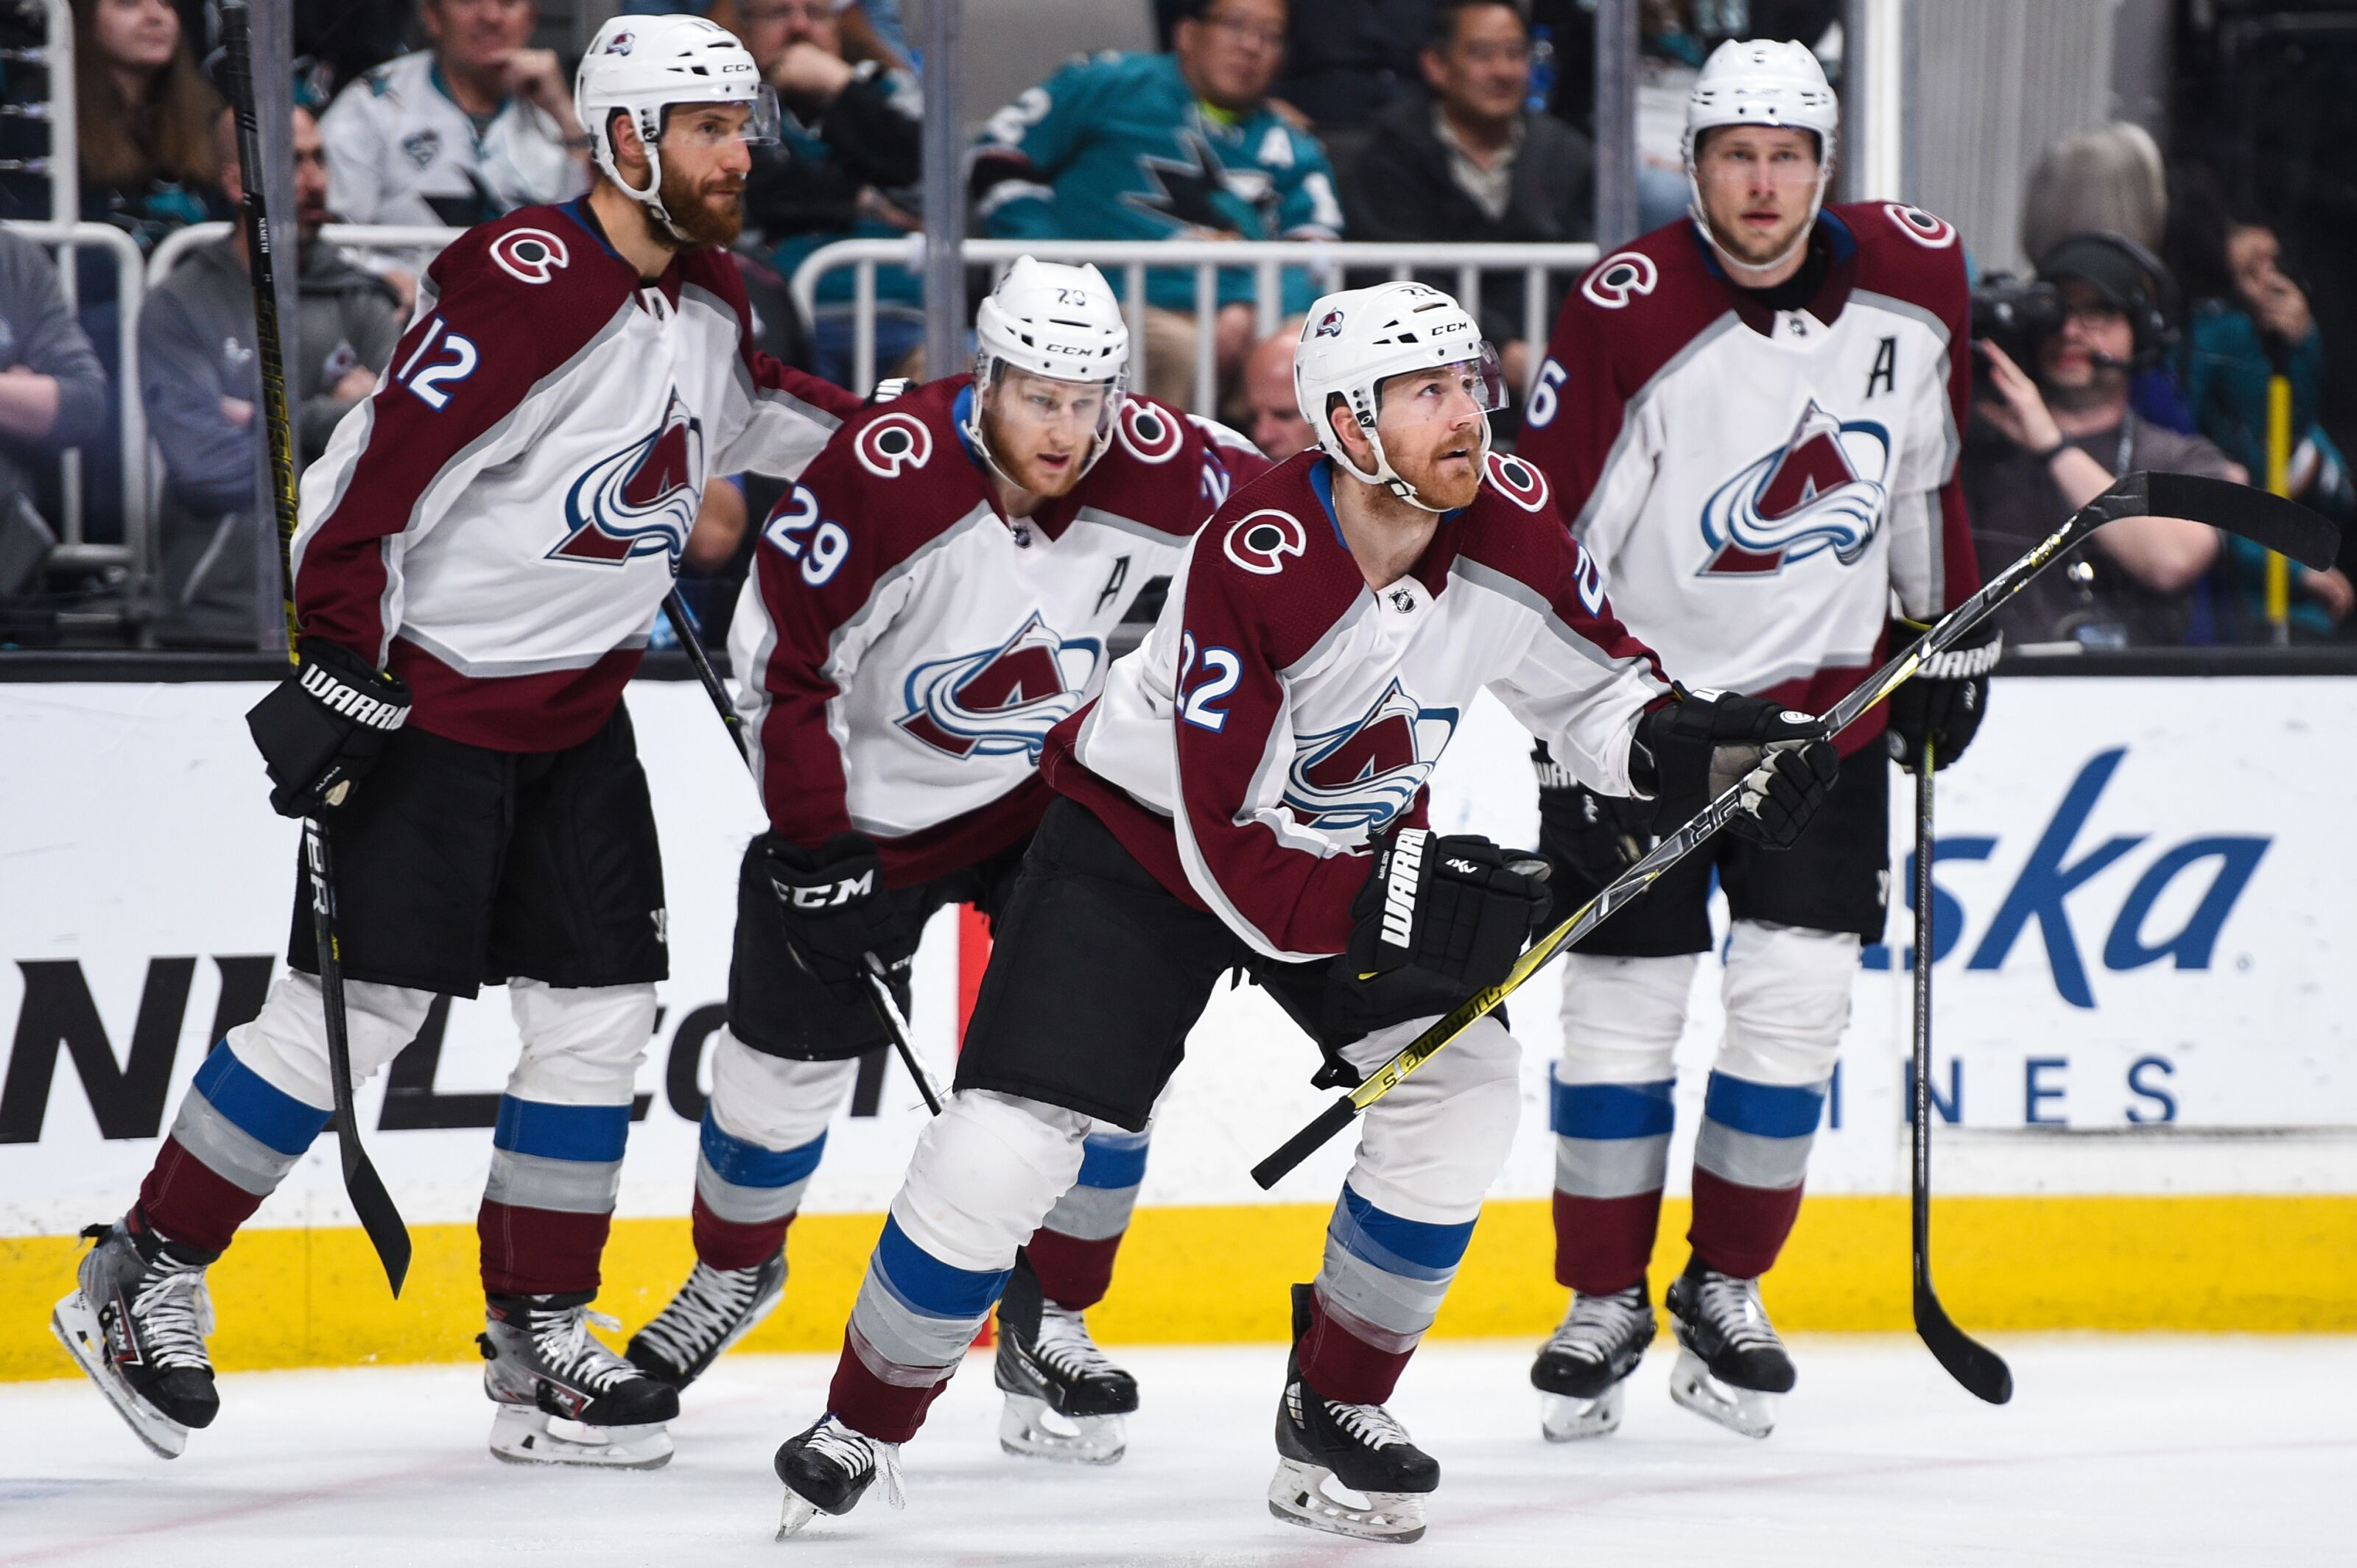 Colorado Avalanche: NHL Network Talks Team's Chances at Division Title